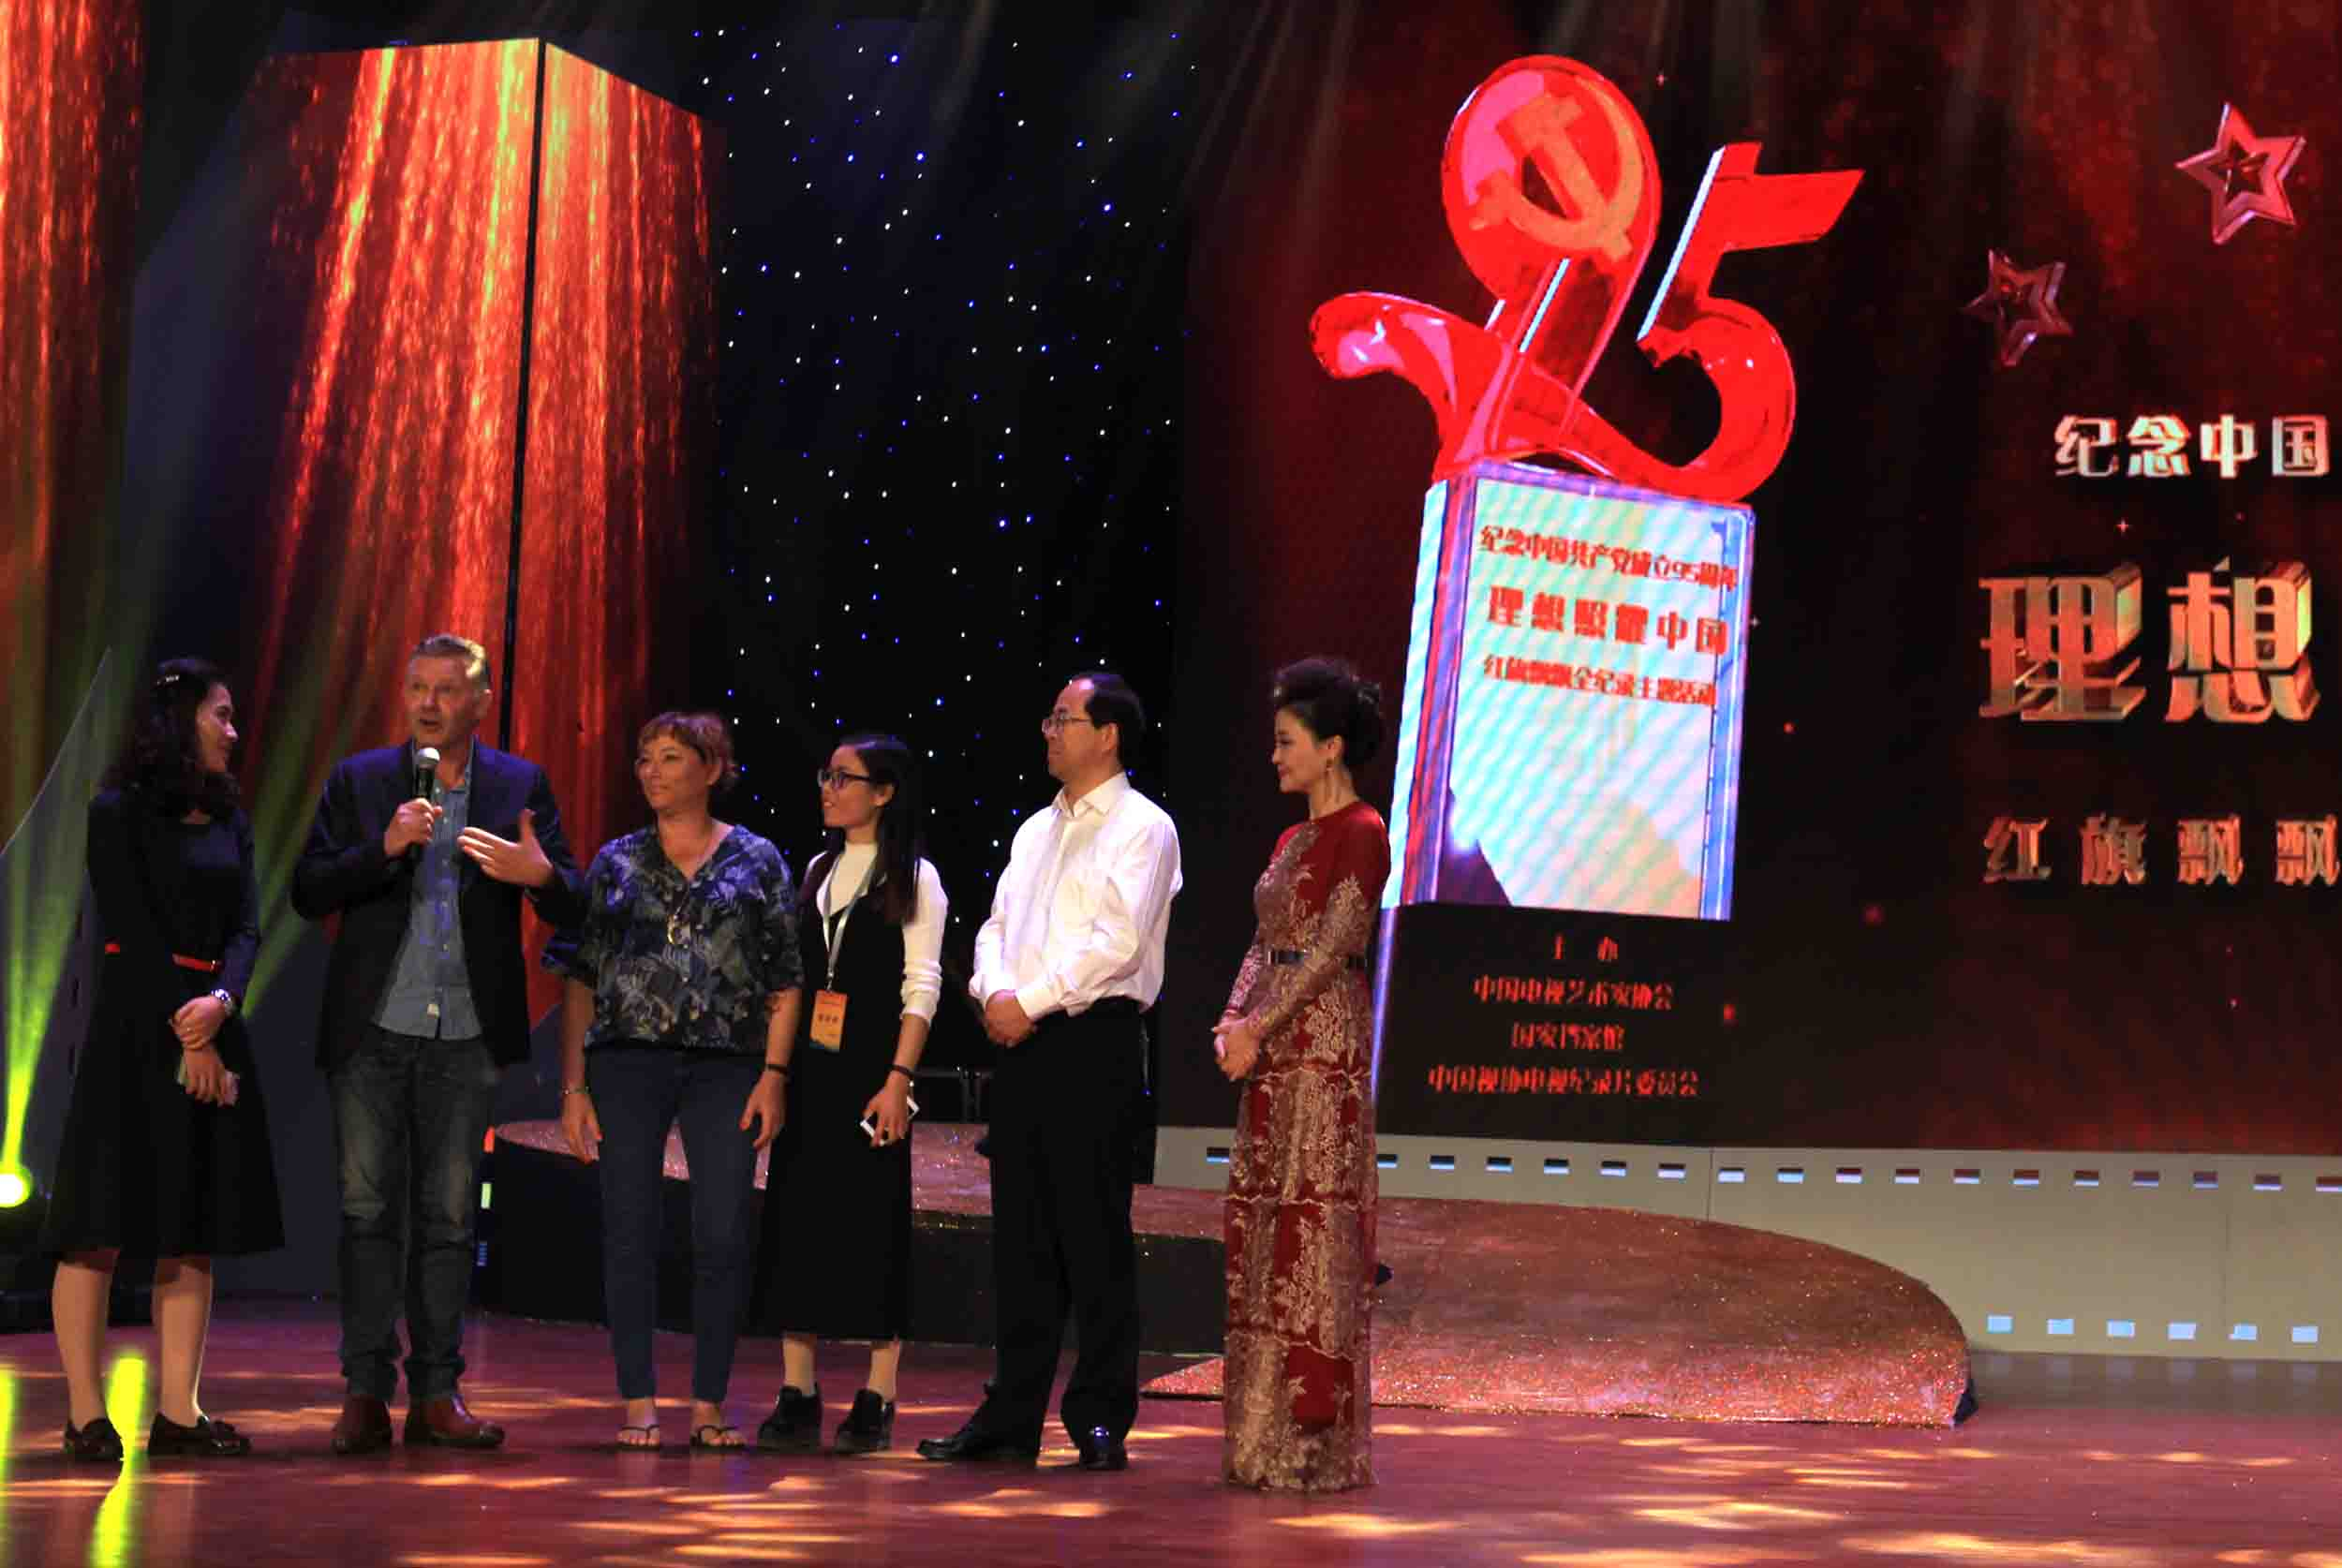 Presenting awards at a documentary film festival in Jiayuguan, China